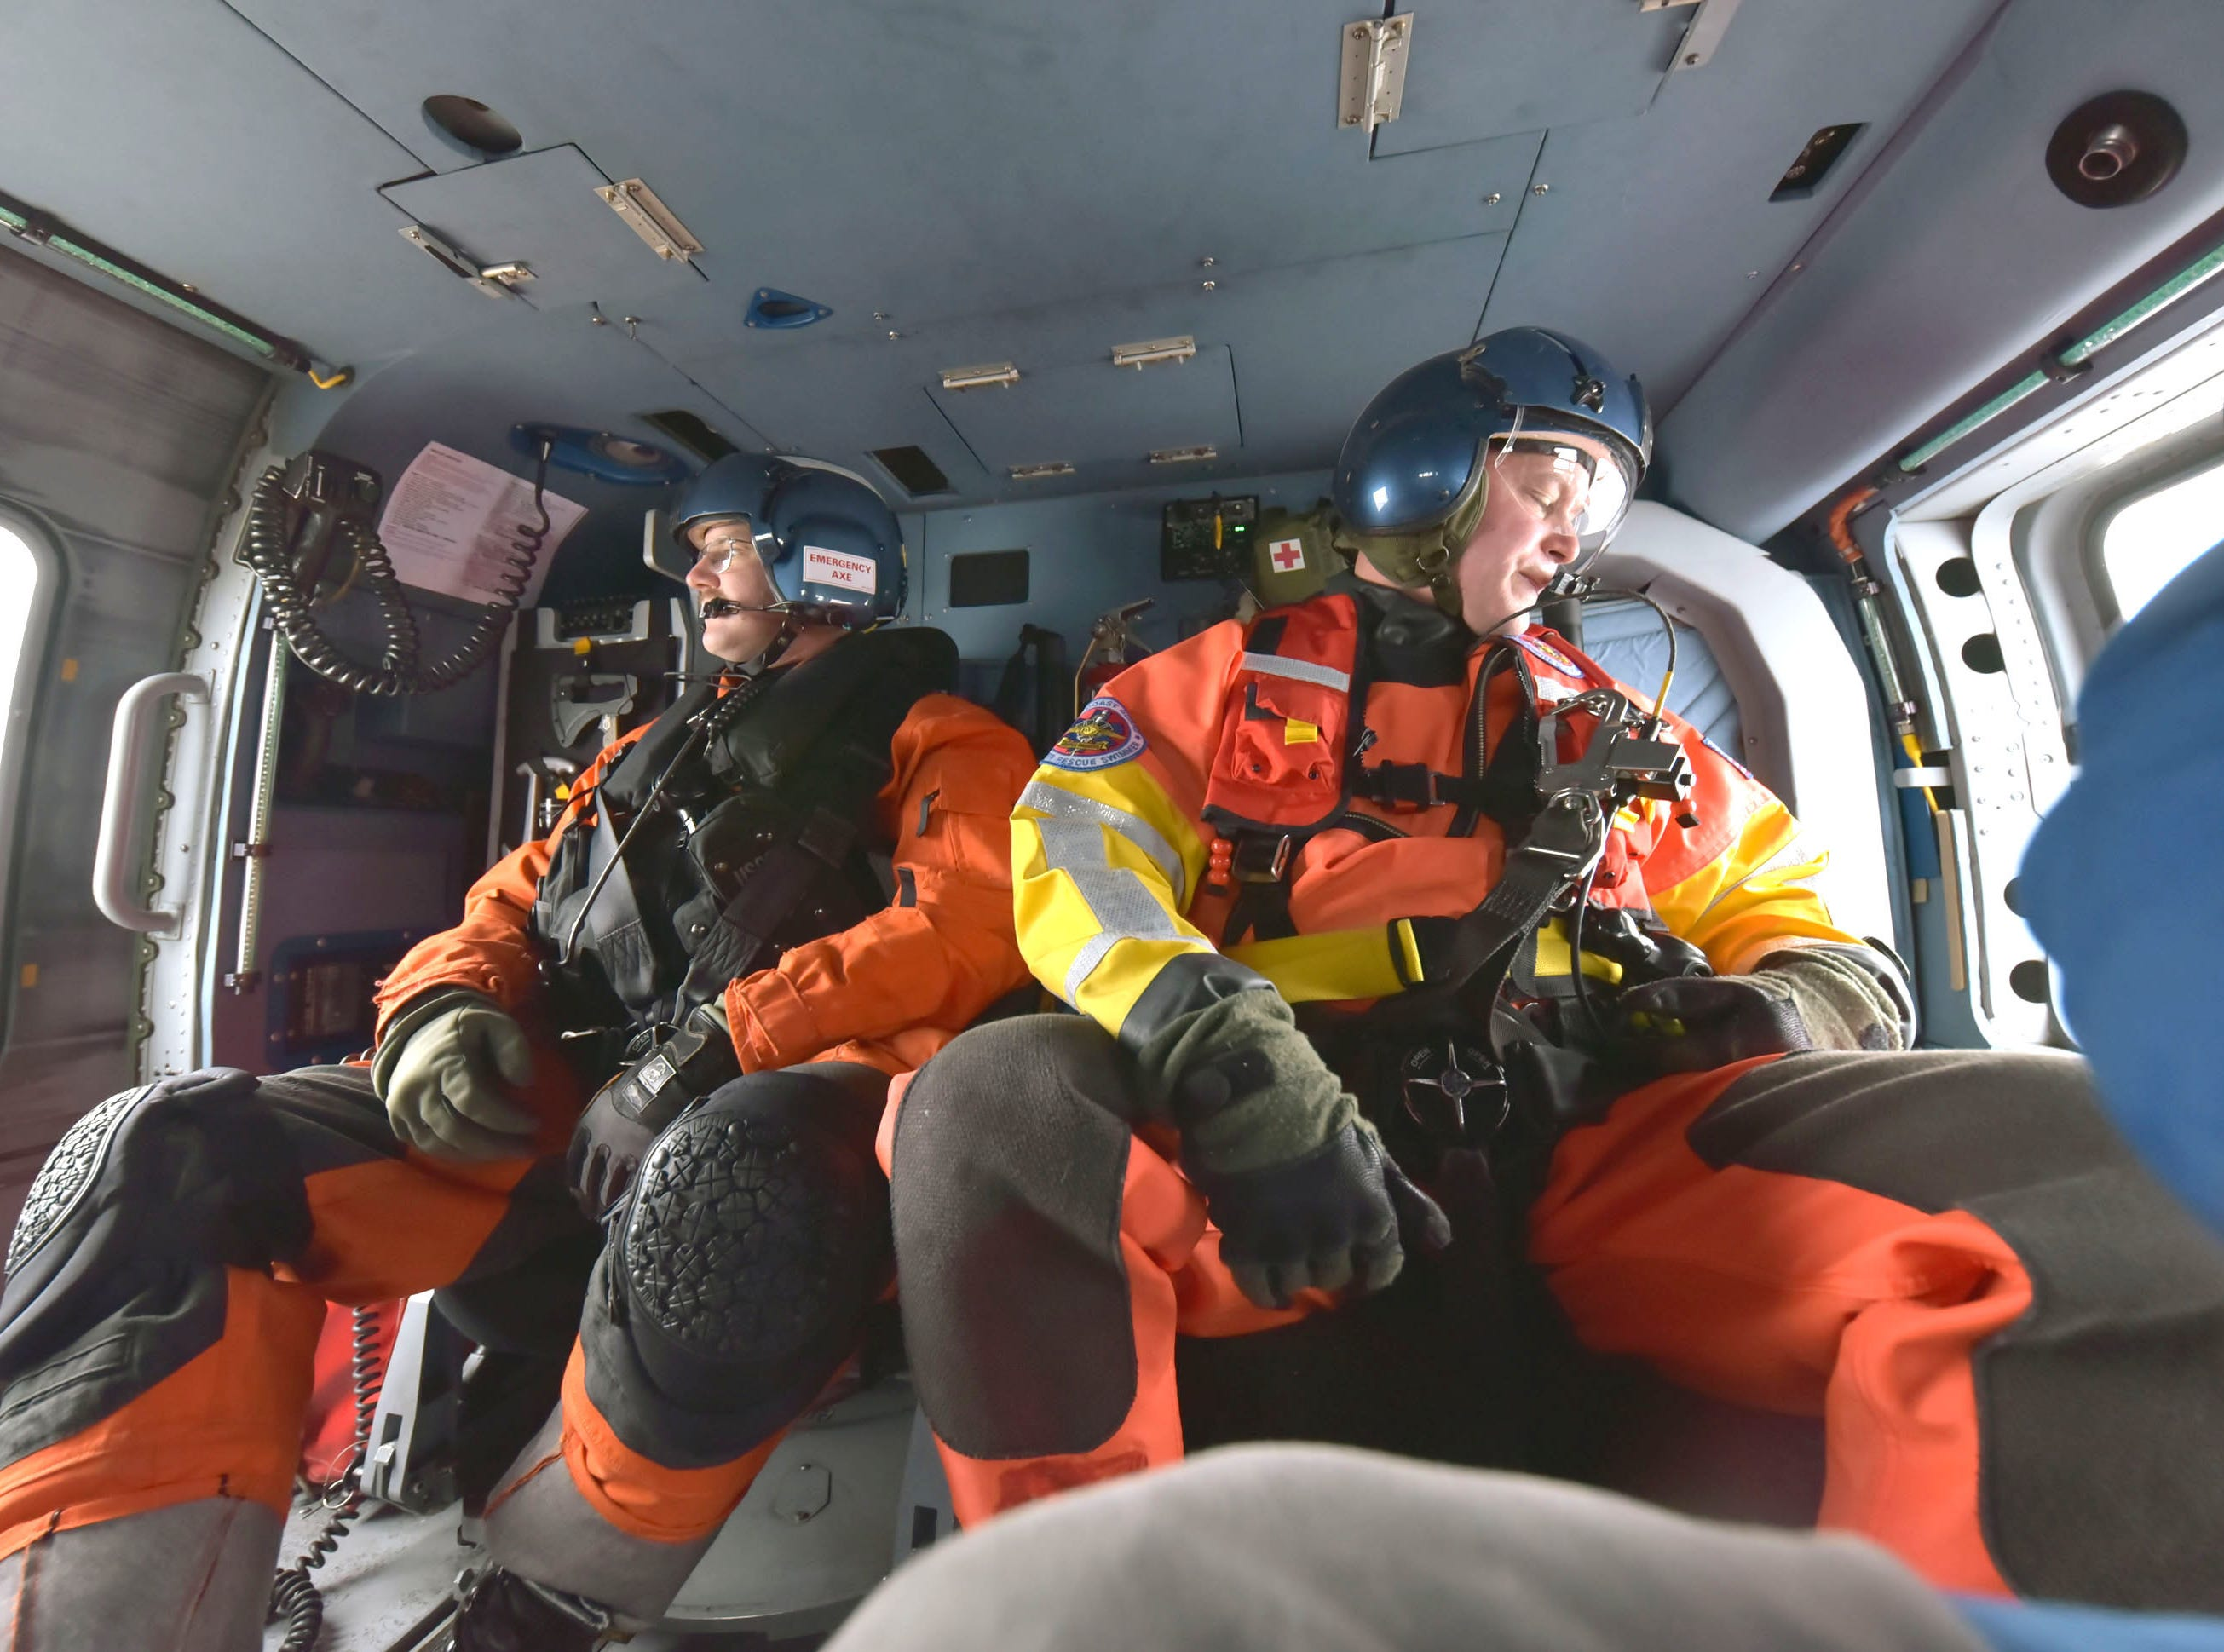 The U.S. Coast Guard's John Axelson, left, and Brad Fitspatrick settle into a flight aboard a MH-60T Jayhawk helicopter Thursday, Feb. 14, 2019 at Air Station Traverse City. The mission had the crew take aboard two Coast Guardsmen in St. Ignace and fly them to the White Shoal Lighthouse in upper Lake Michigan to perform maintenance and repairs on the lighthouse's beacon.